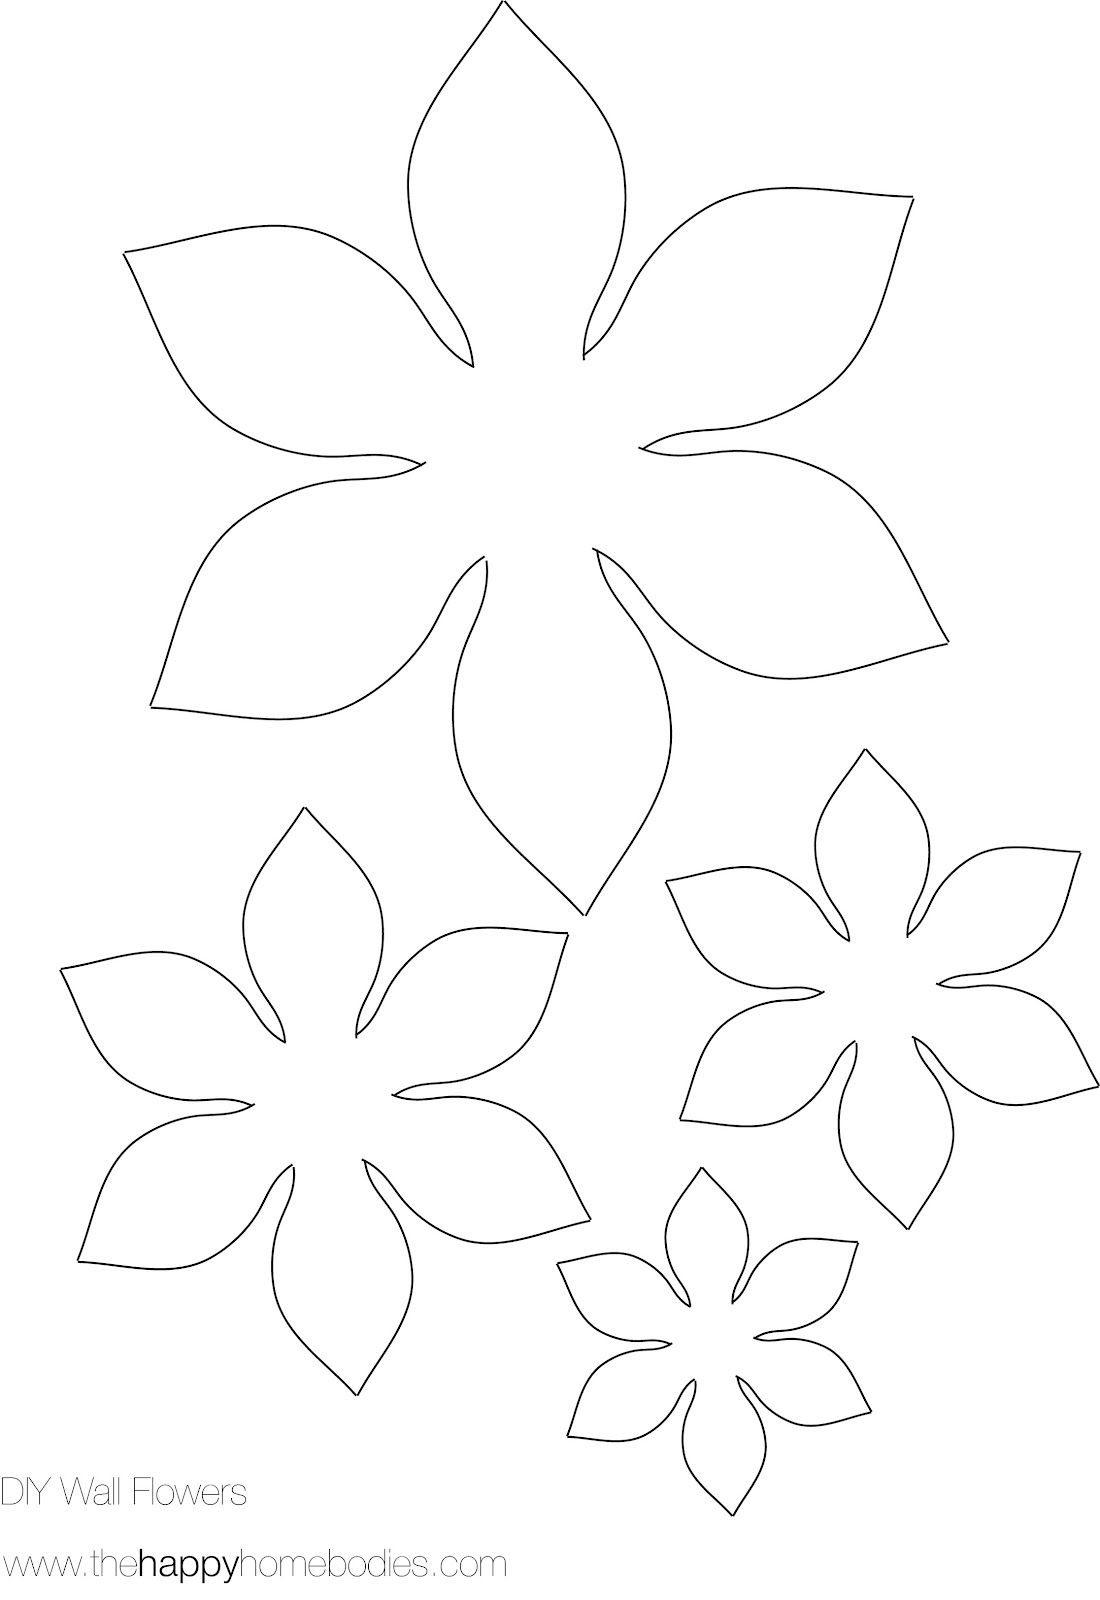 Flower template on pinterest for Paper cut out templates flowers